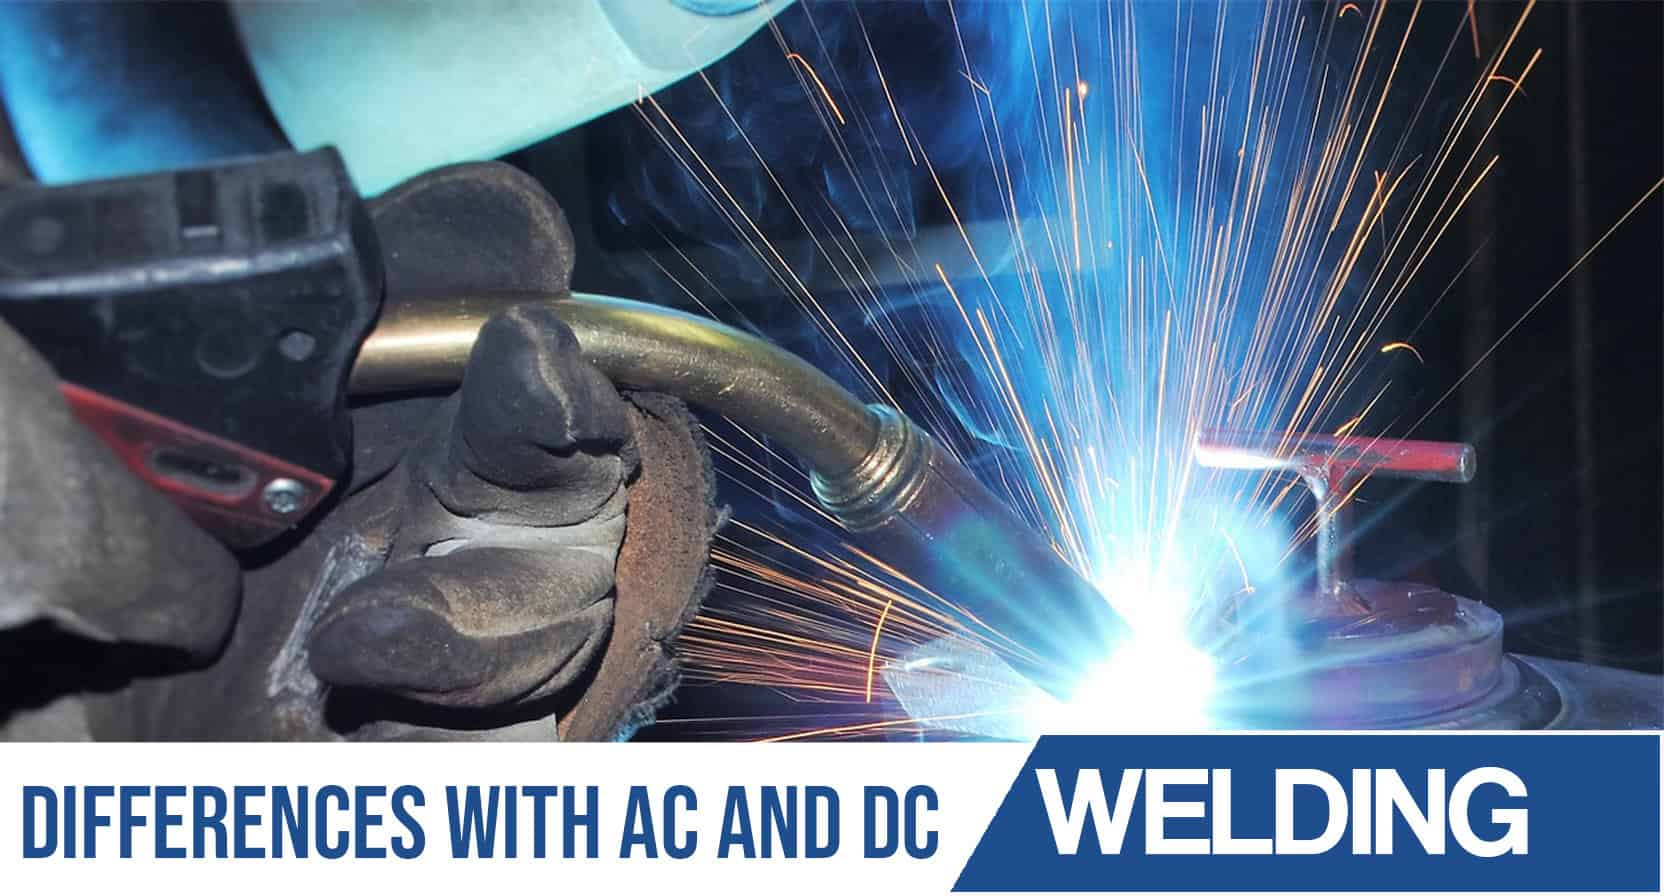 Welder using MIG torch